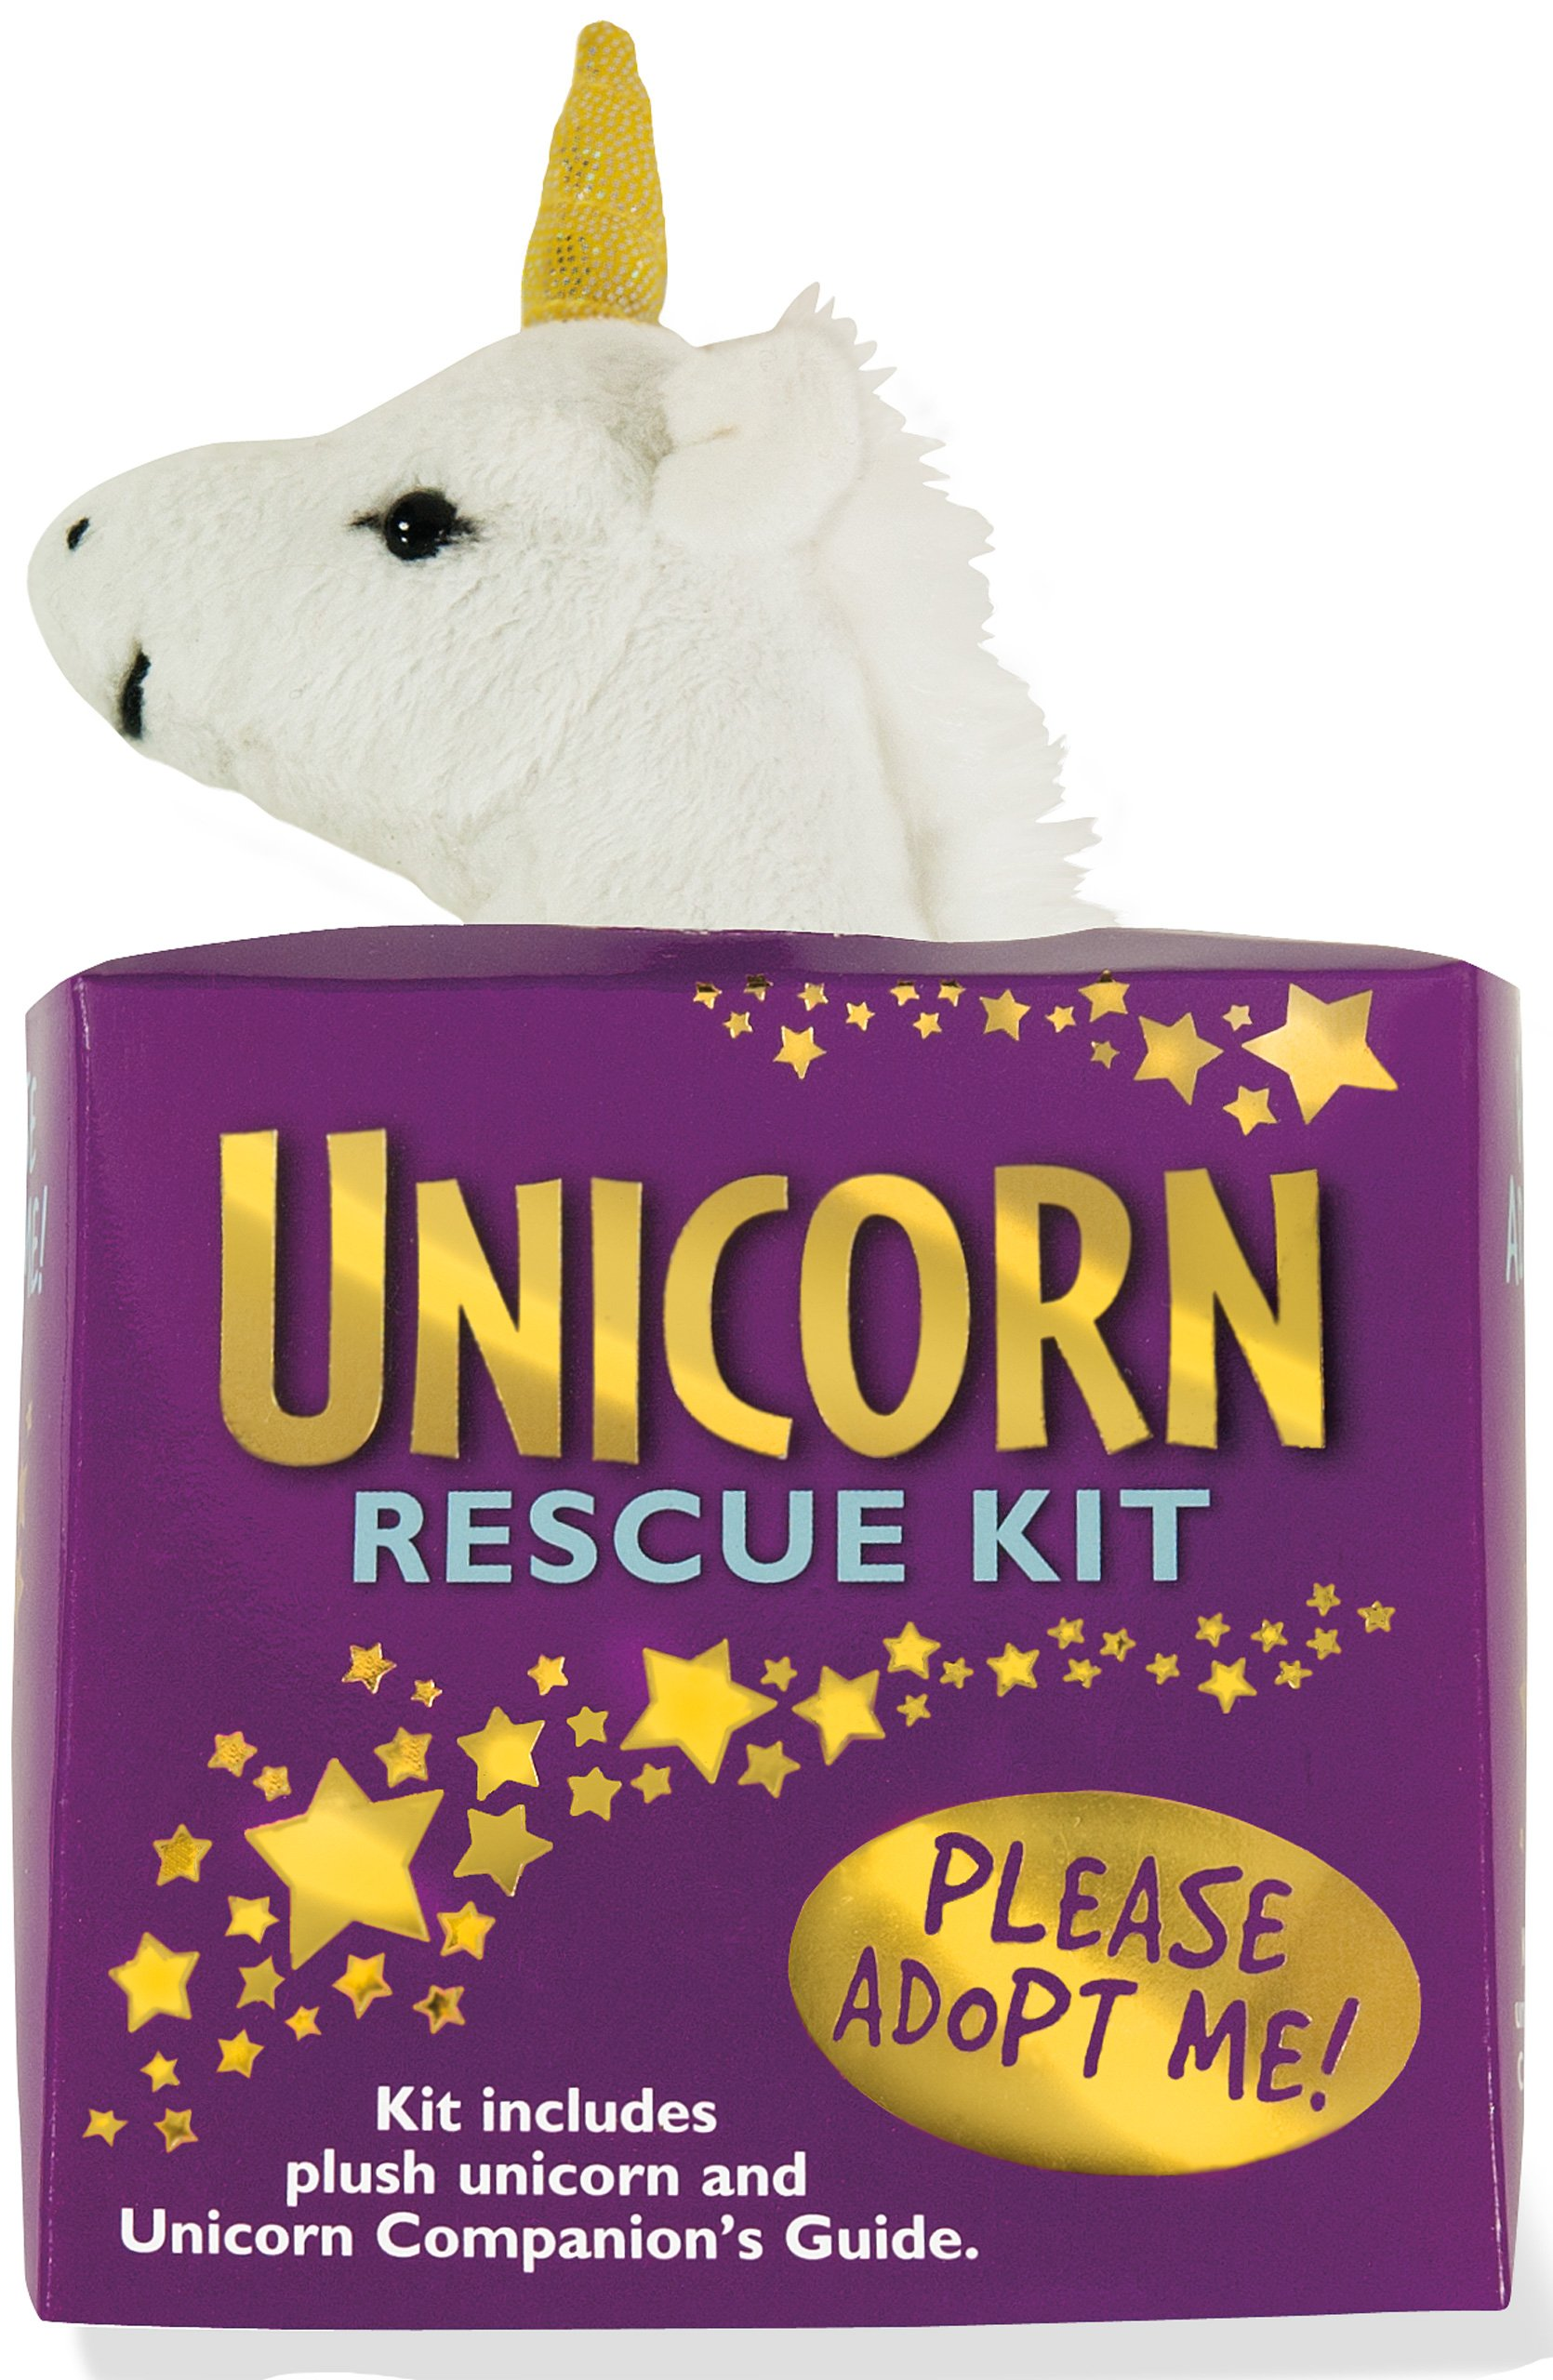 Unicorn Rescue Kit (Plush Toy and Book): Peter Pauper Press